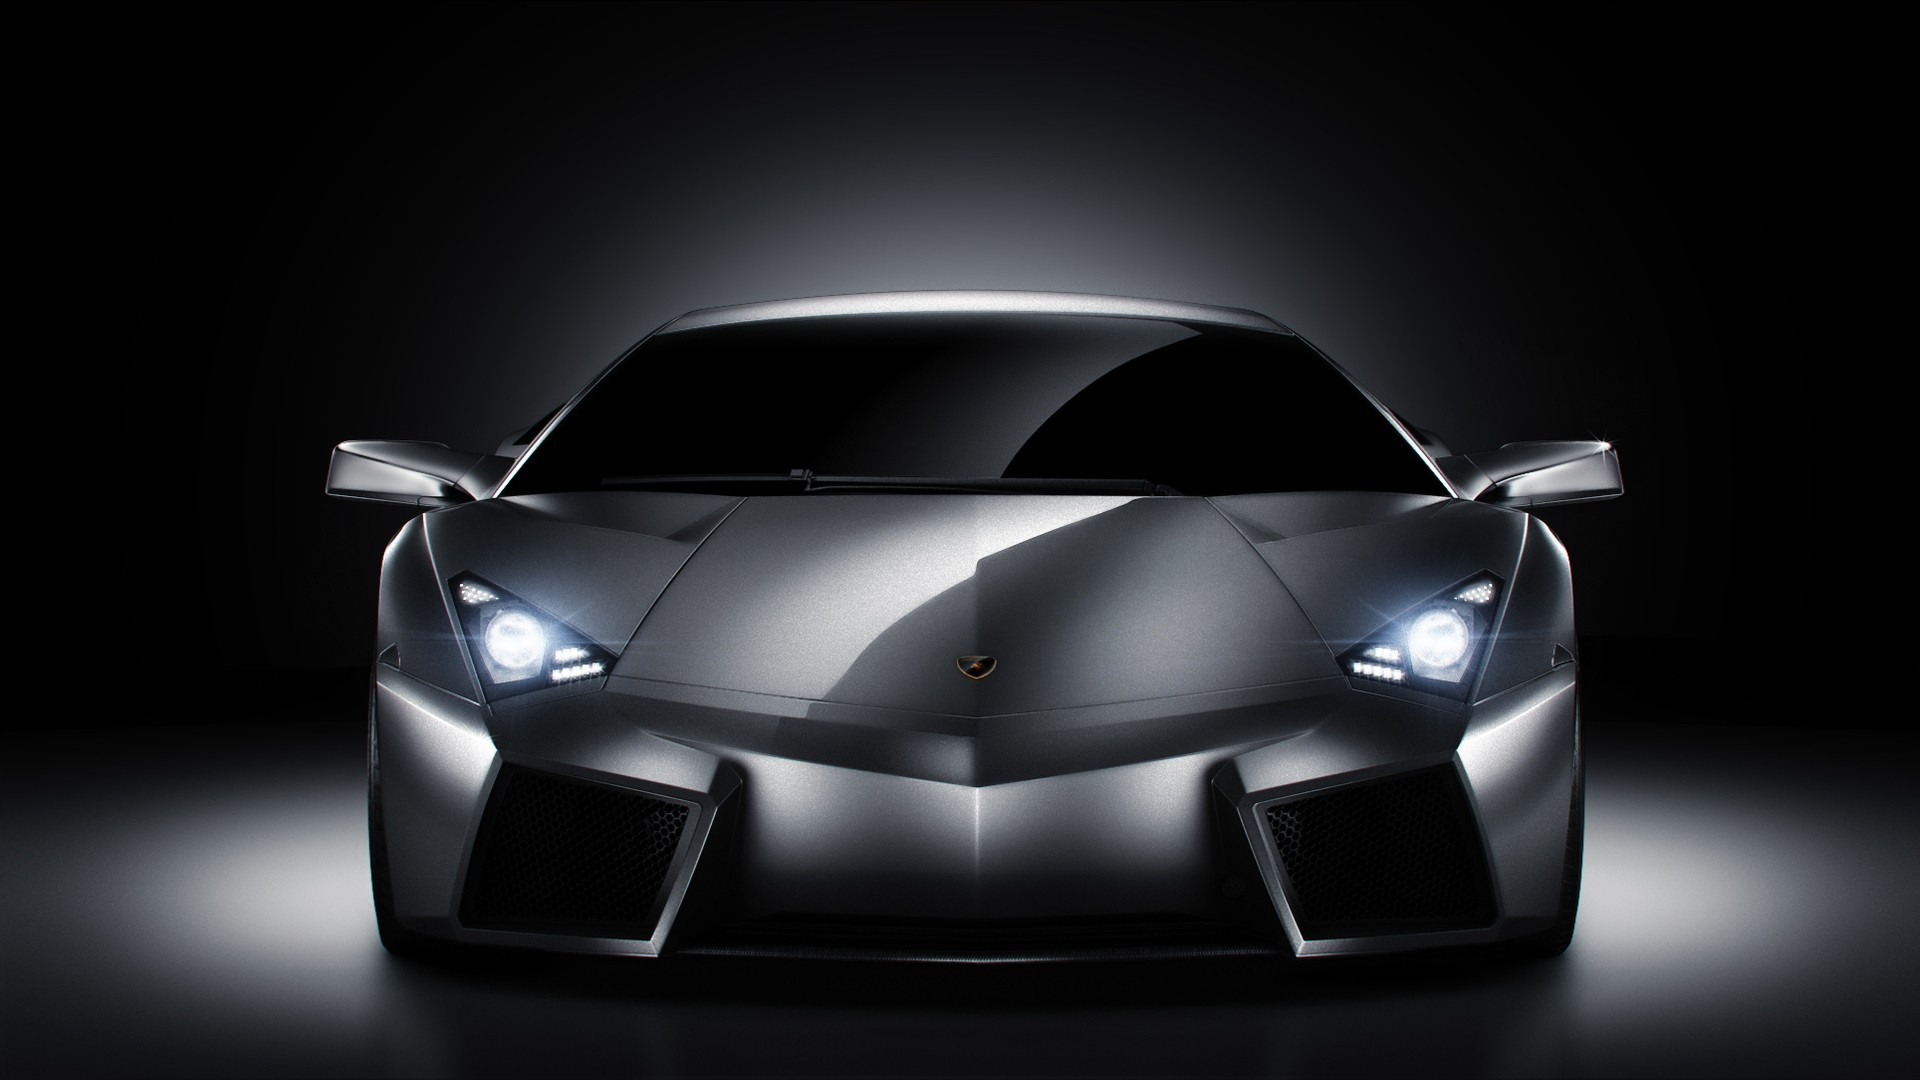 Lamborghini Hd Wallpaper Wallpapersafari